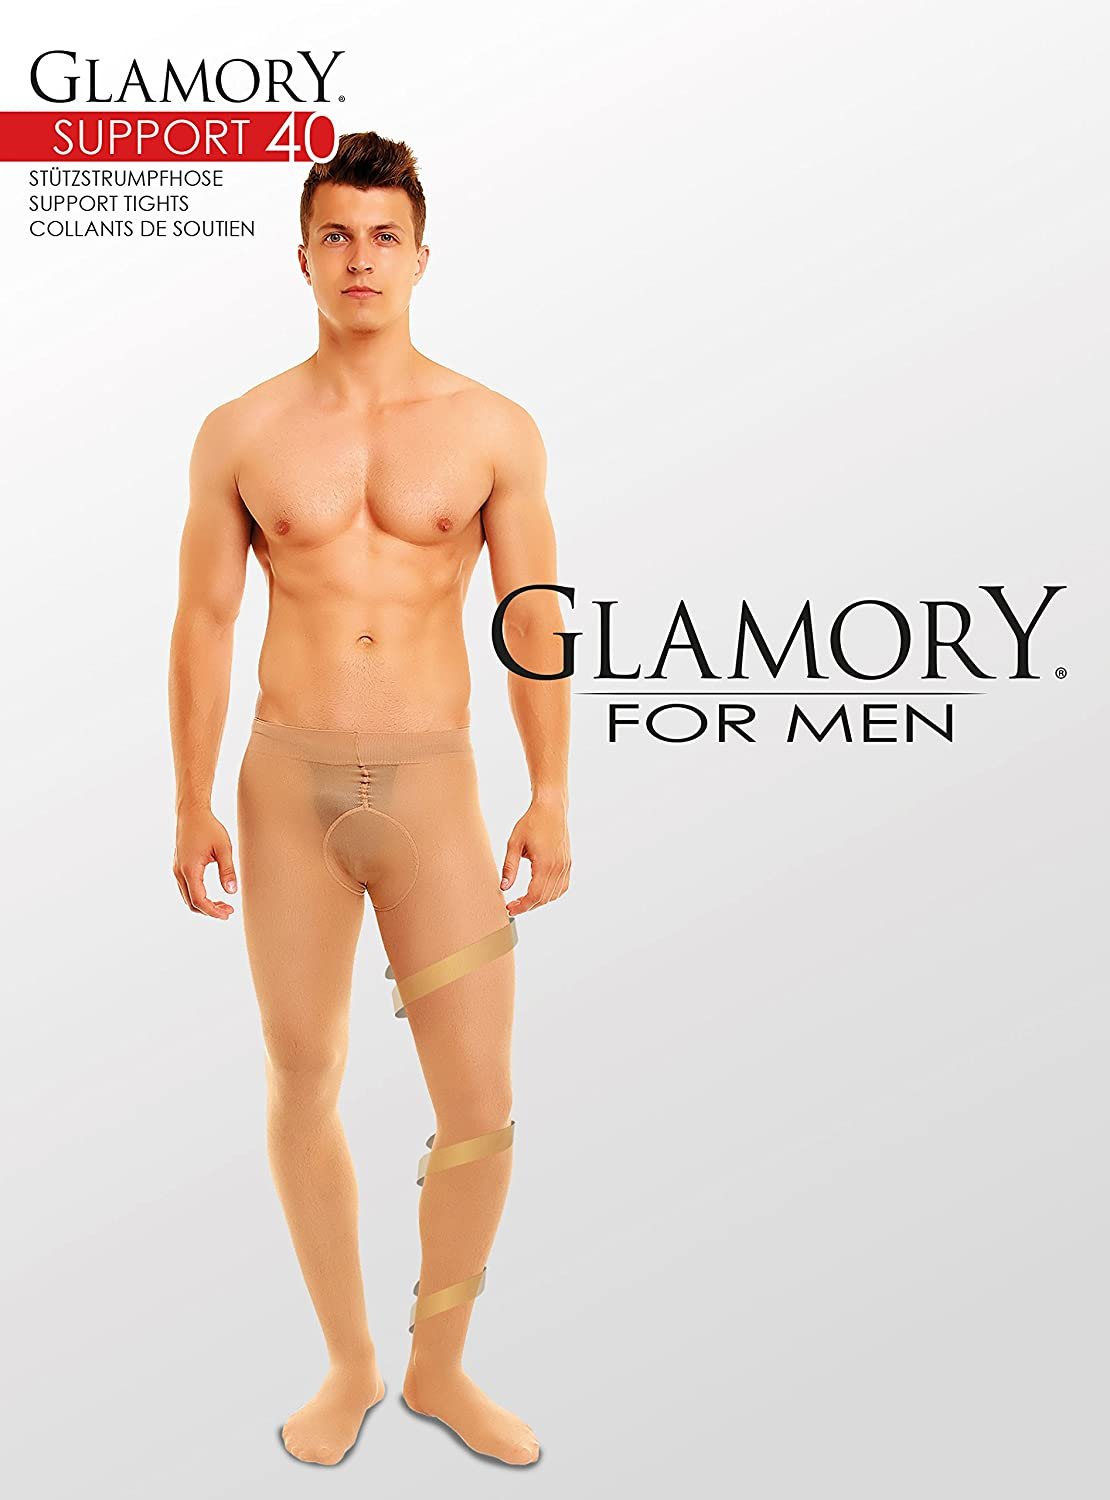 3fa4501ad7 GLAMORY Support 40 Men Support Tights Plus Size at Amazon Men's Clothing  store: